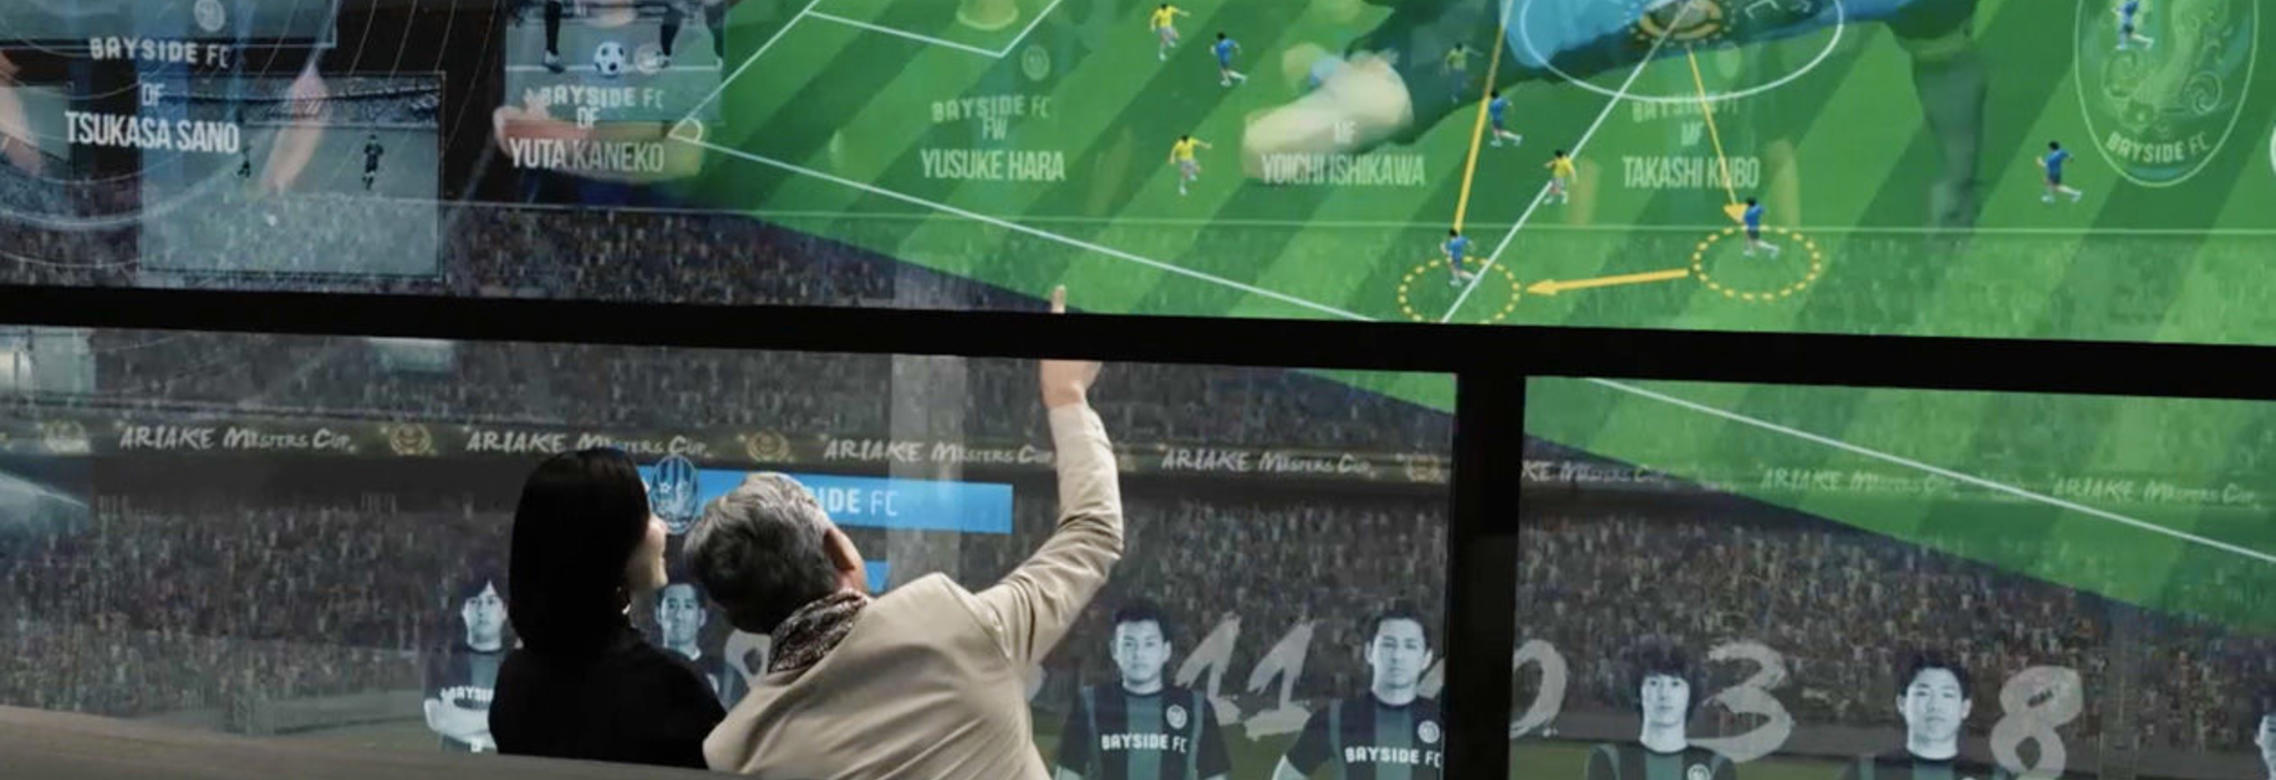 Companies are looking for innovative ways to provide immersive entertainment.